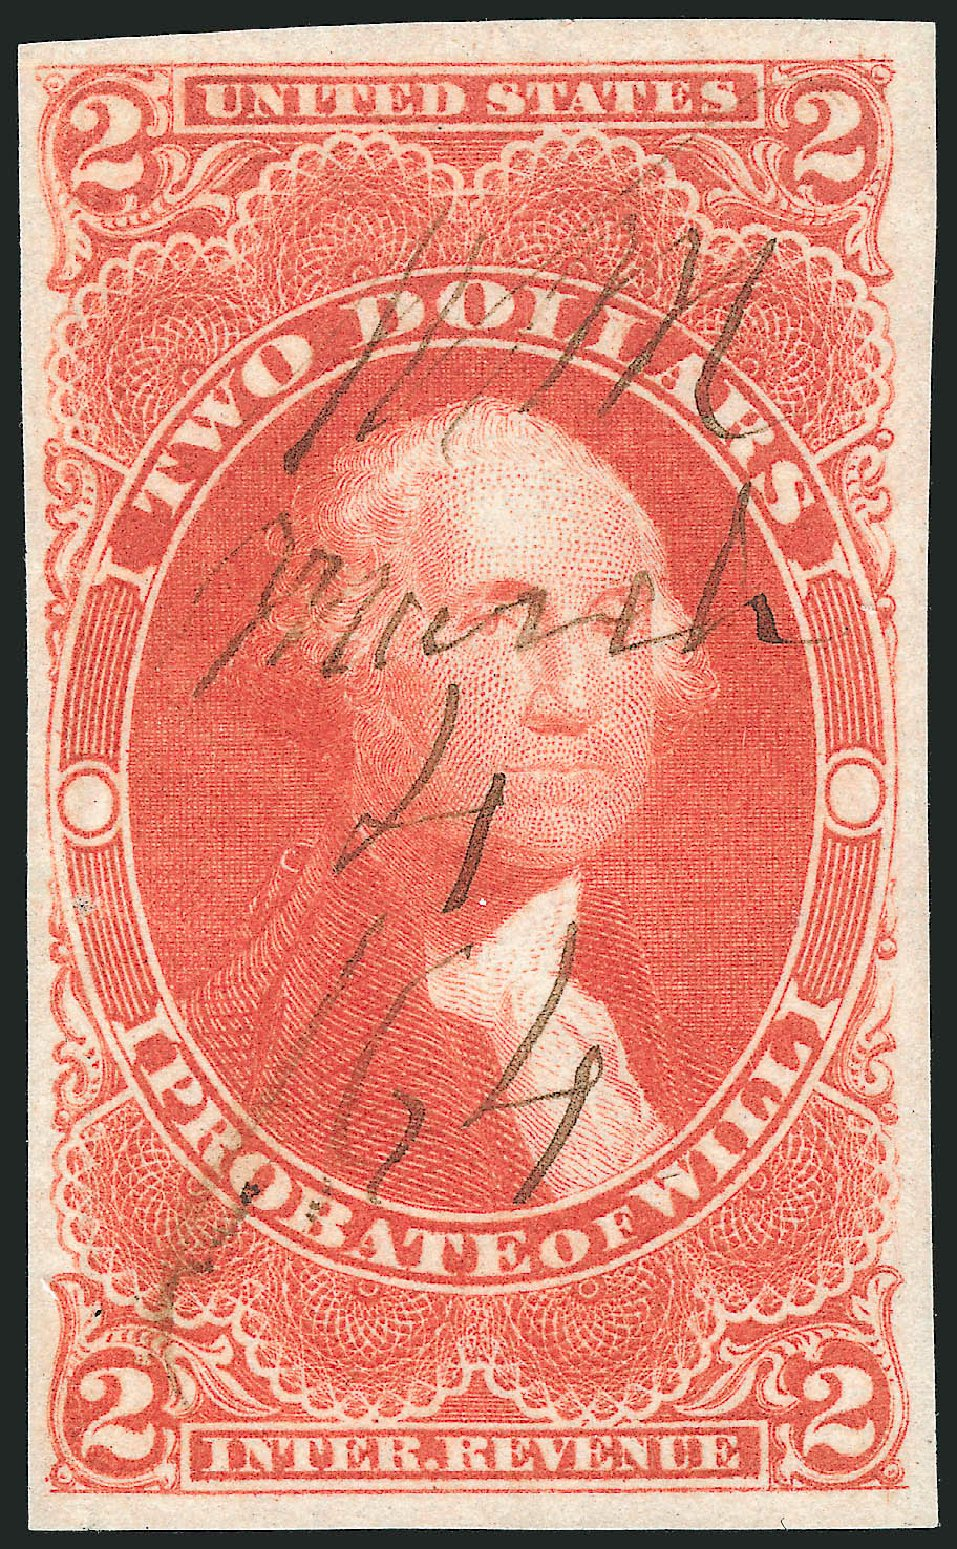 US Stamp Price Scott Catalogue R83 - US$2.00 1862 Revenue Probate of Will. Robert Siegel Auction Galleries, Oct 2012, Sale 1031, Lot 1012